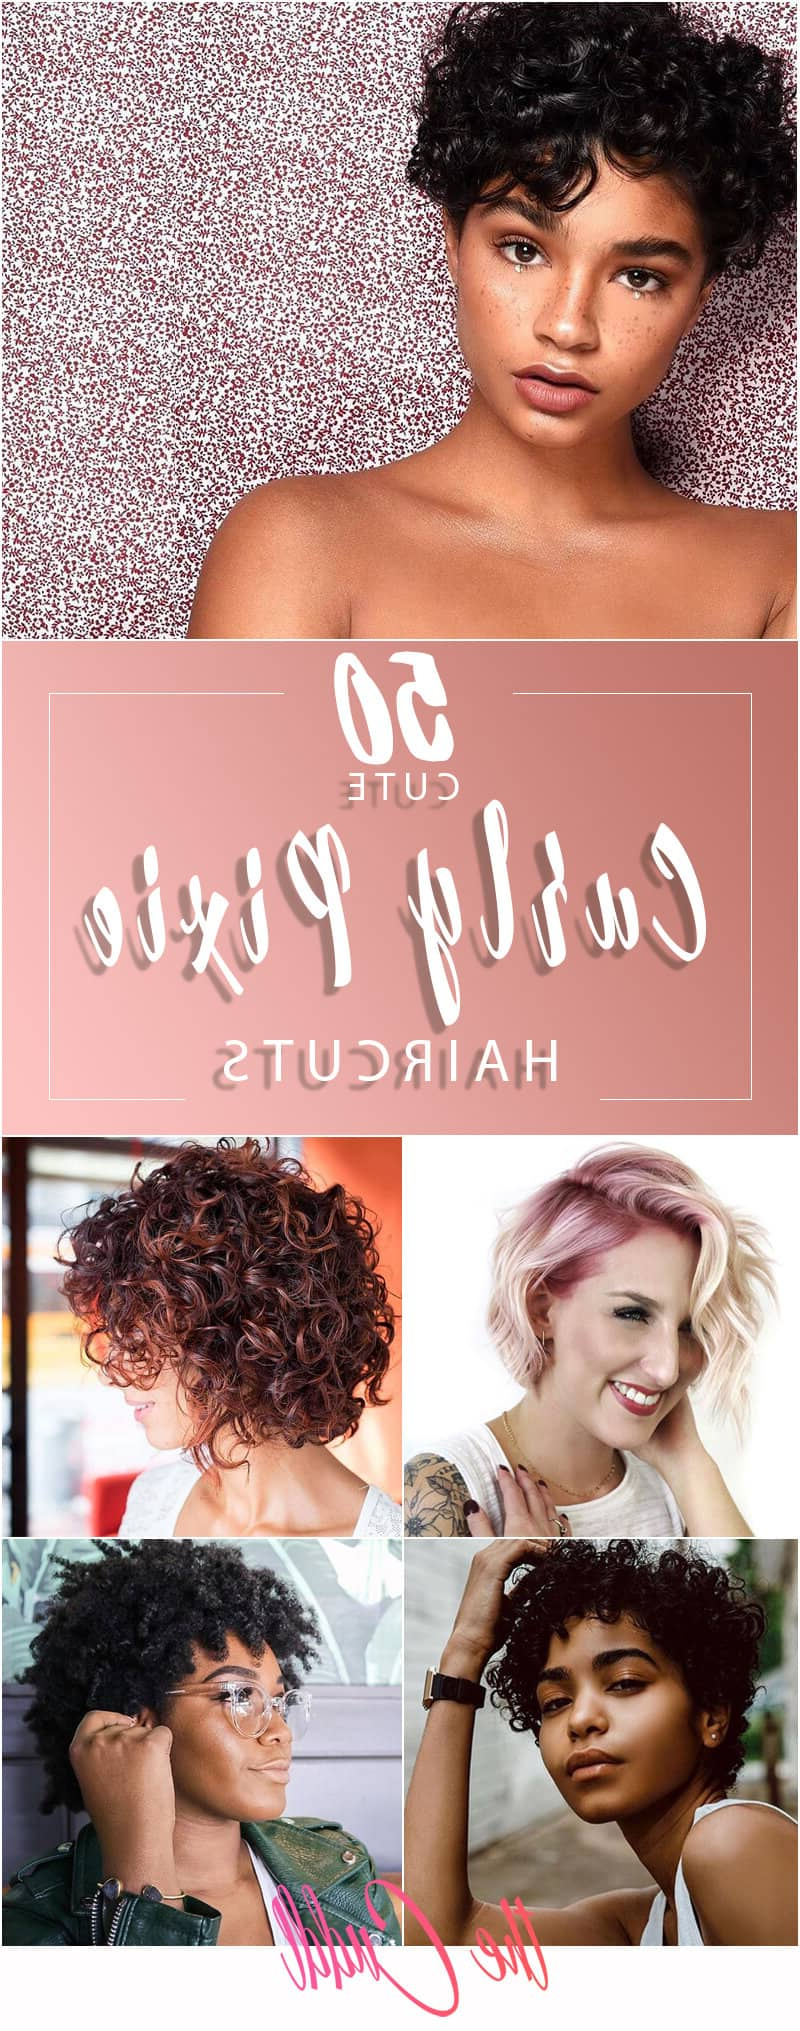 50 Bold Curly Pixie Cut Ideas To Transform Your Style In 2019 Within Pixie Haircuts With Tight Curls (View 4 of 20)